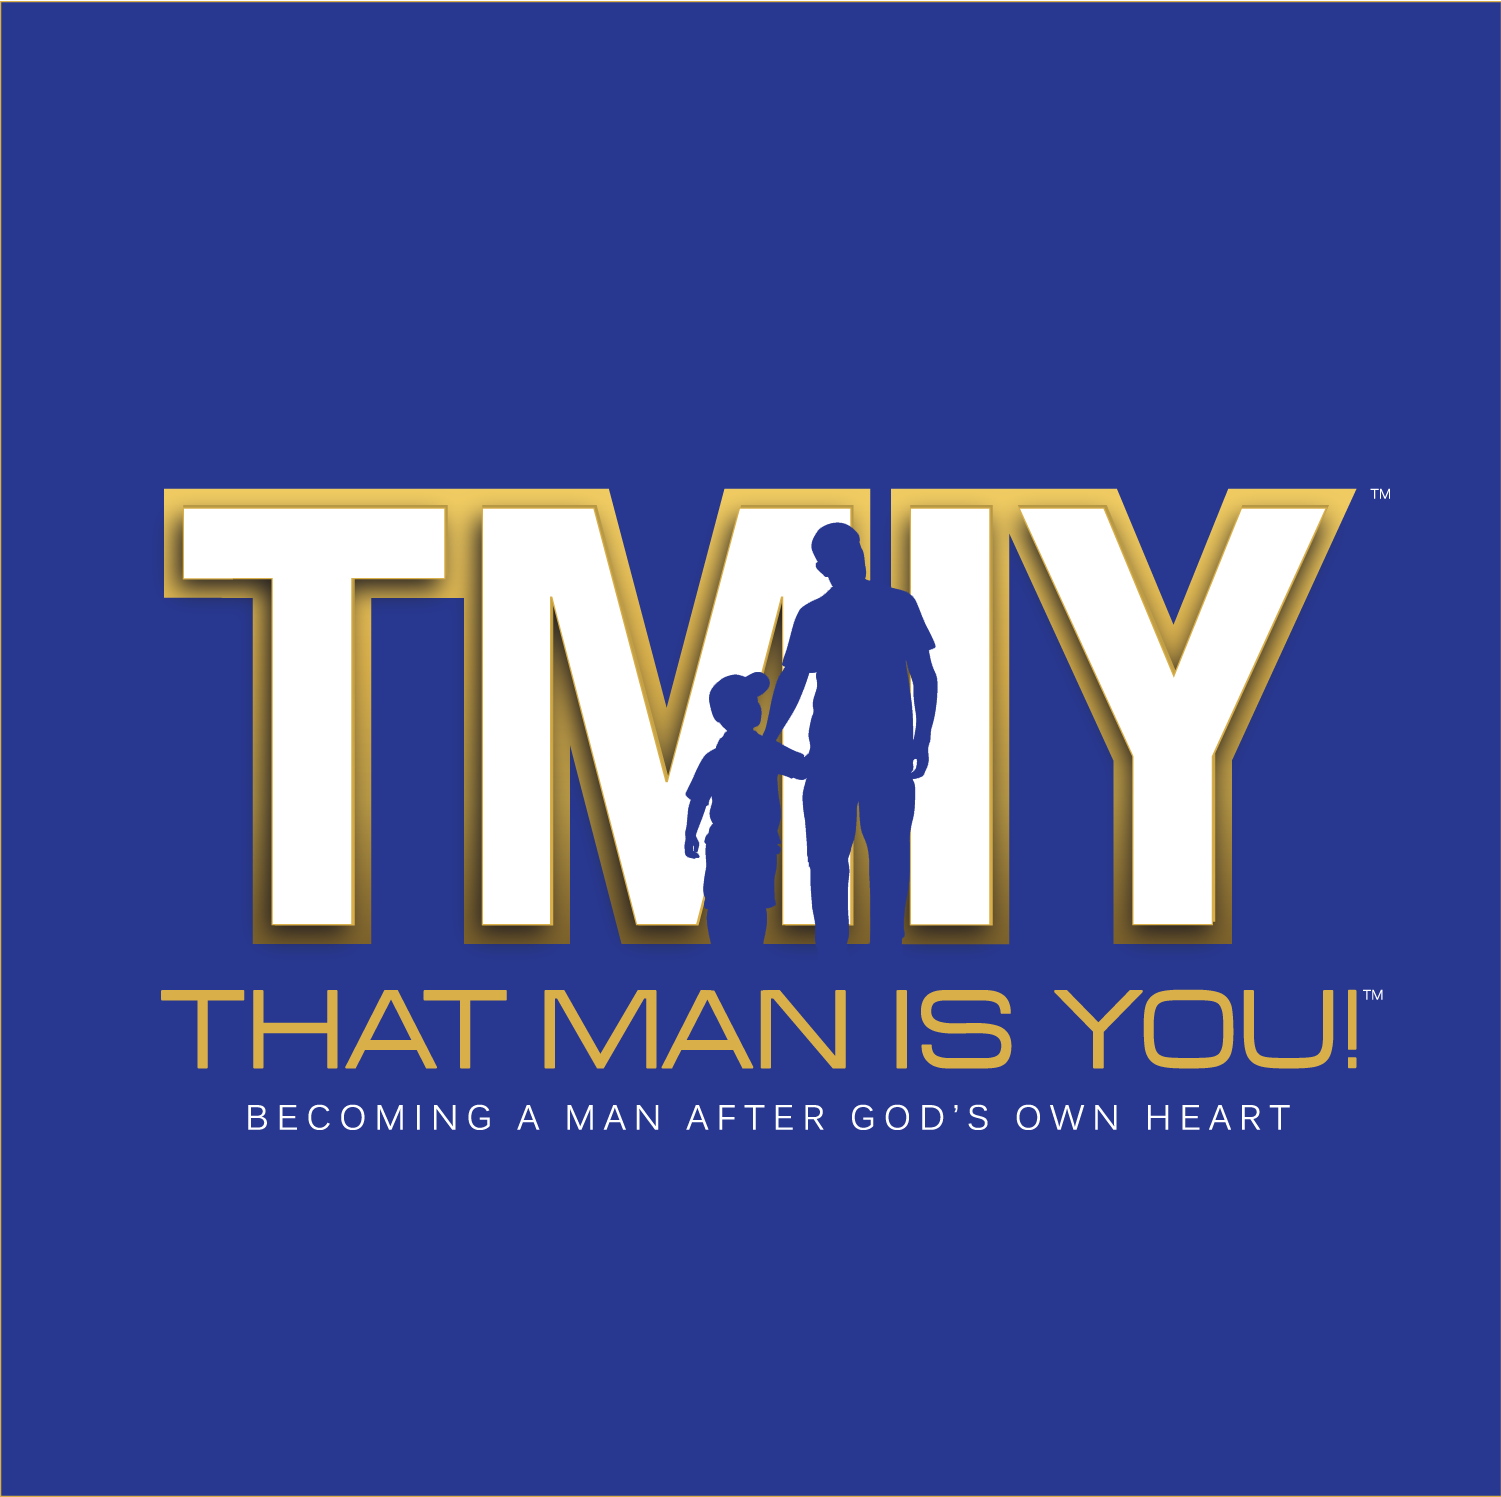 That man is you, becoming a man after God's own heart